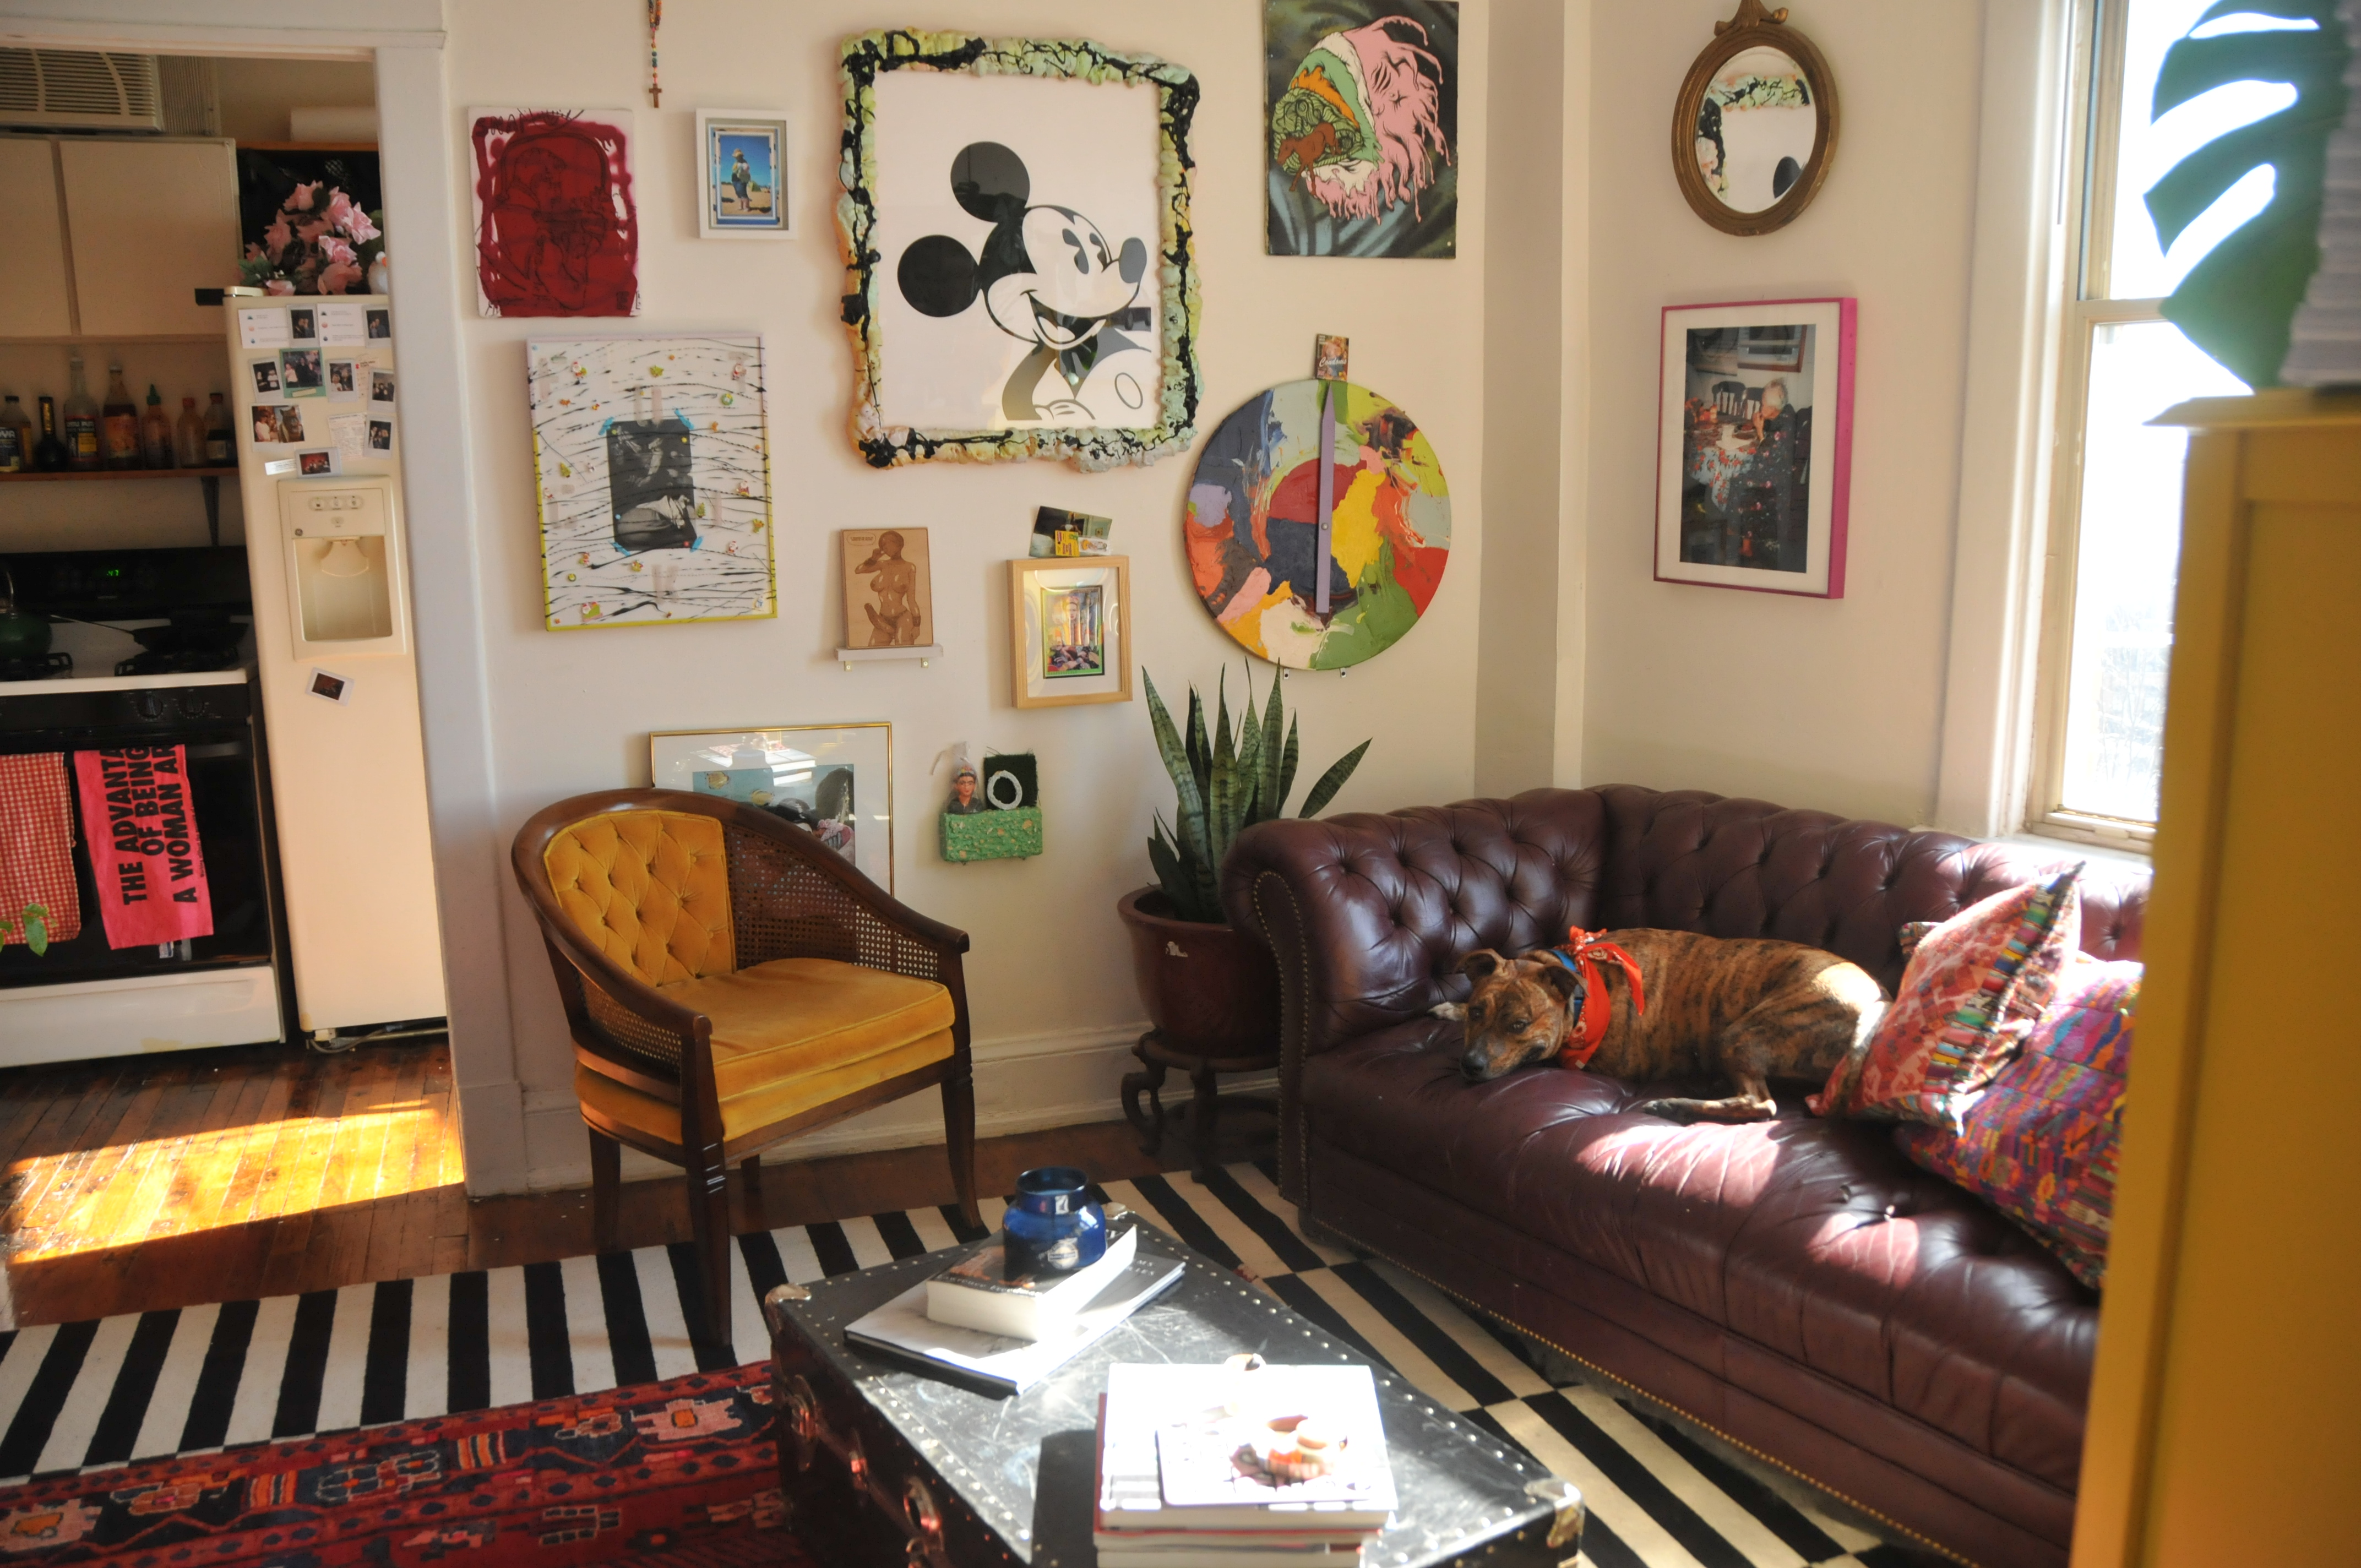 Wall to Wall Art, Plants & Vintage Goodness in a Quirky Cool ...